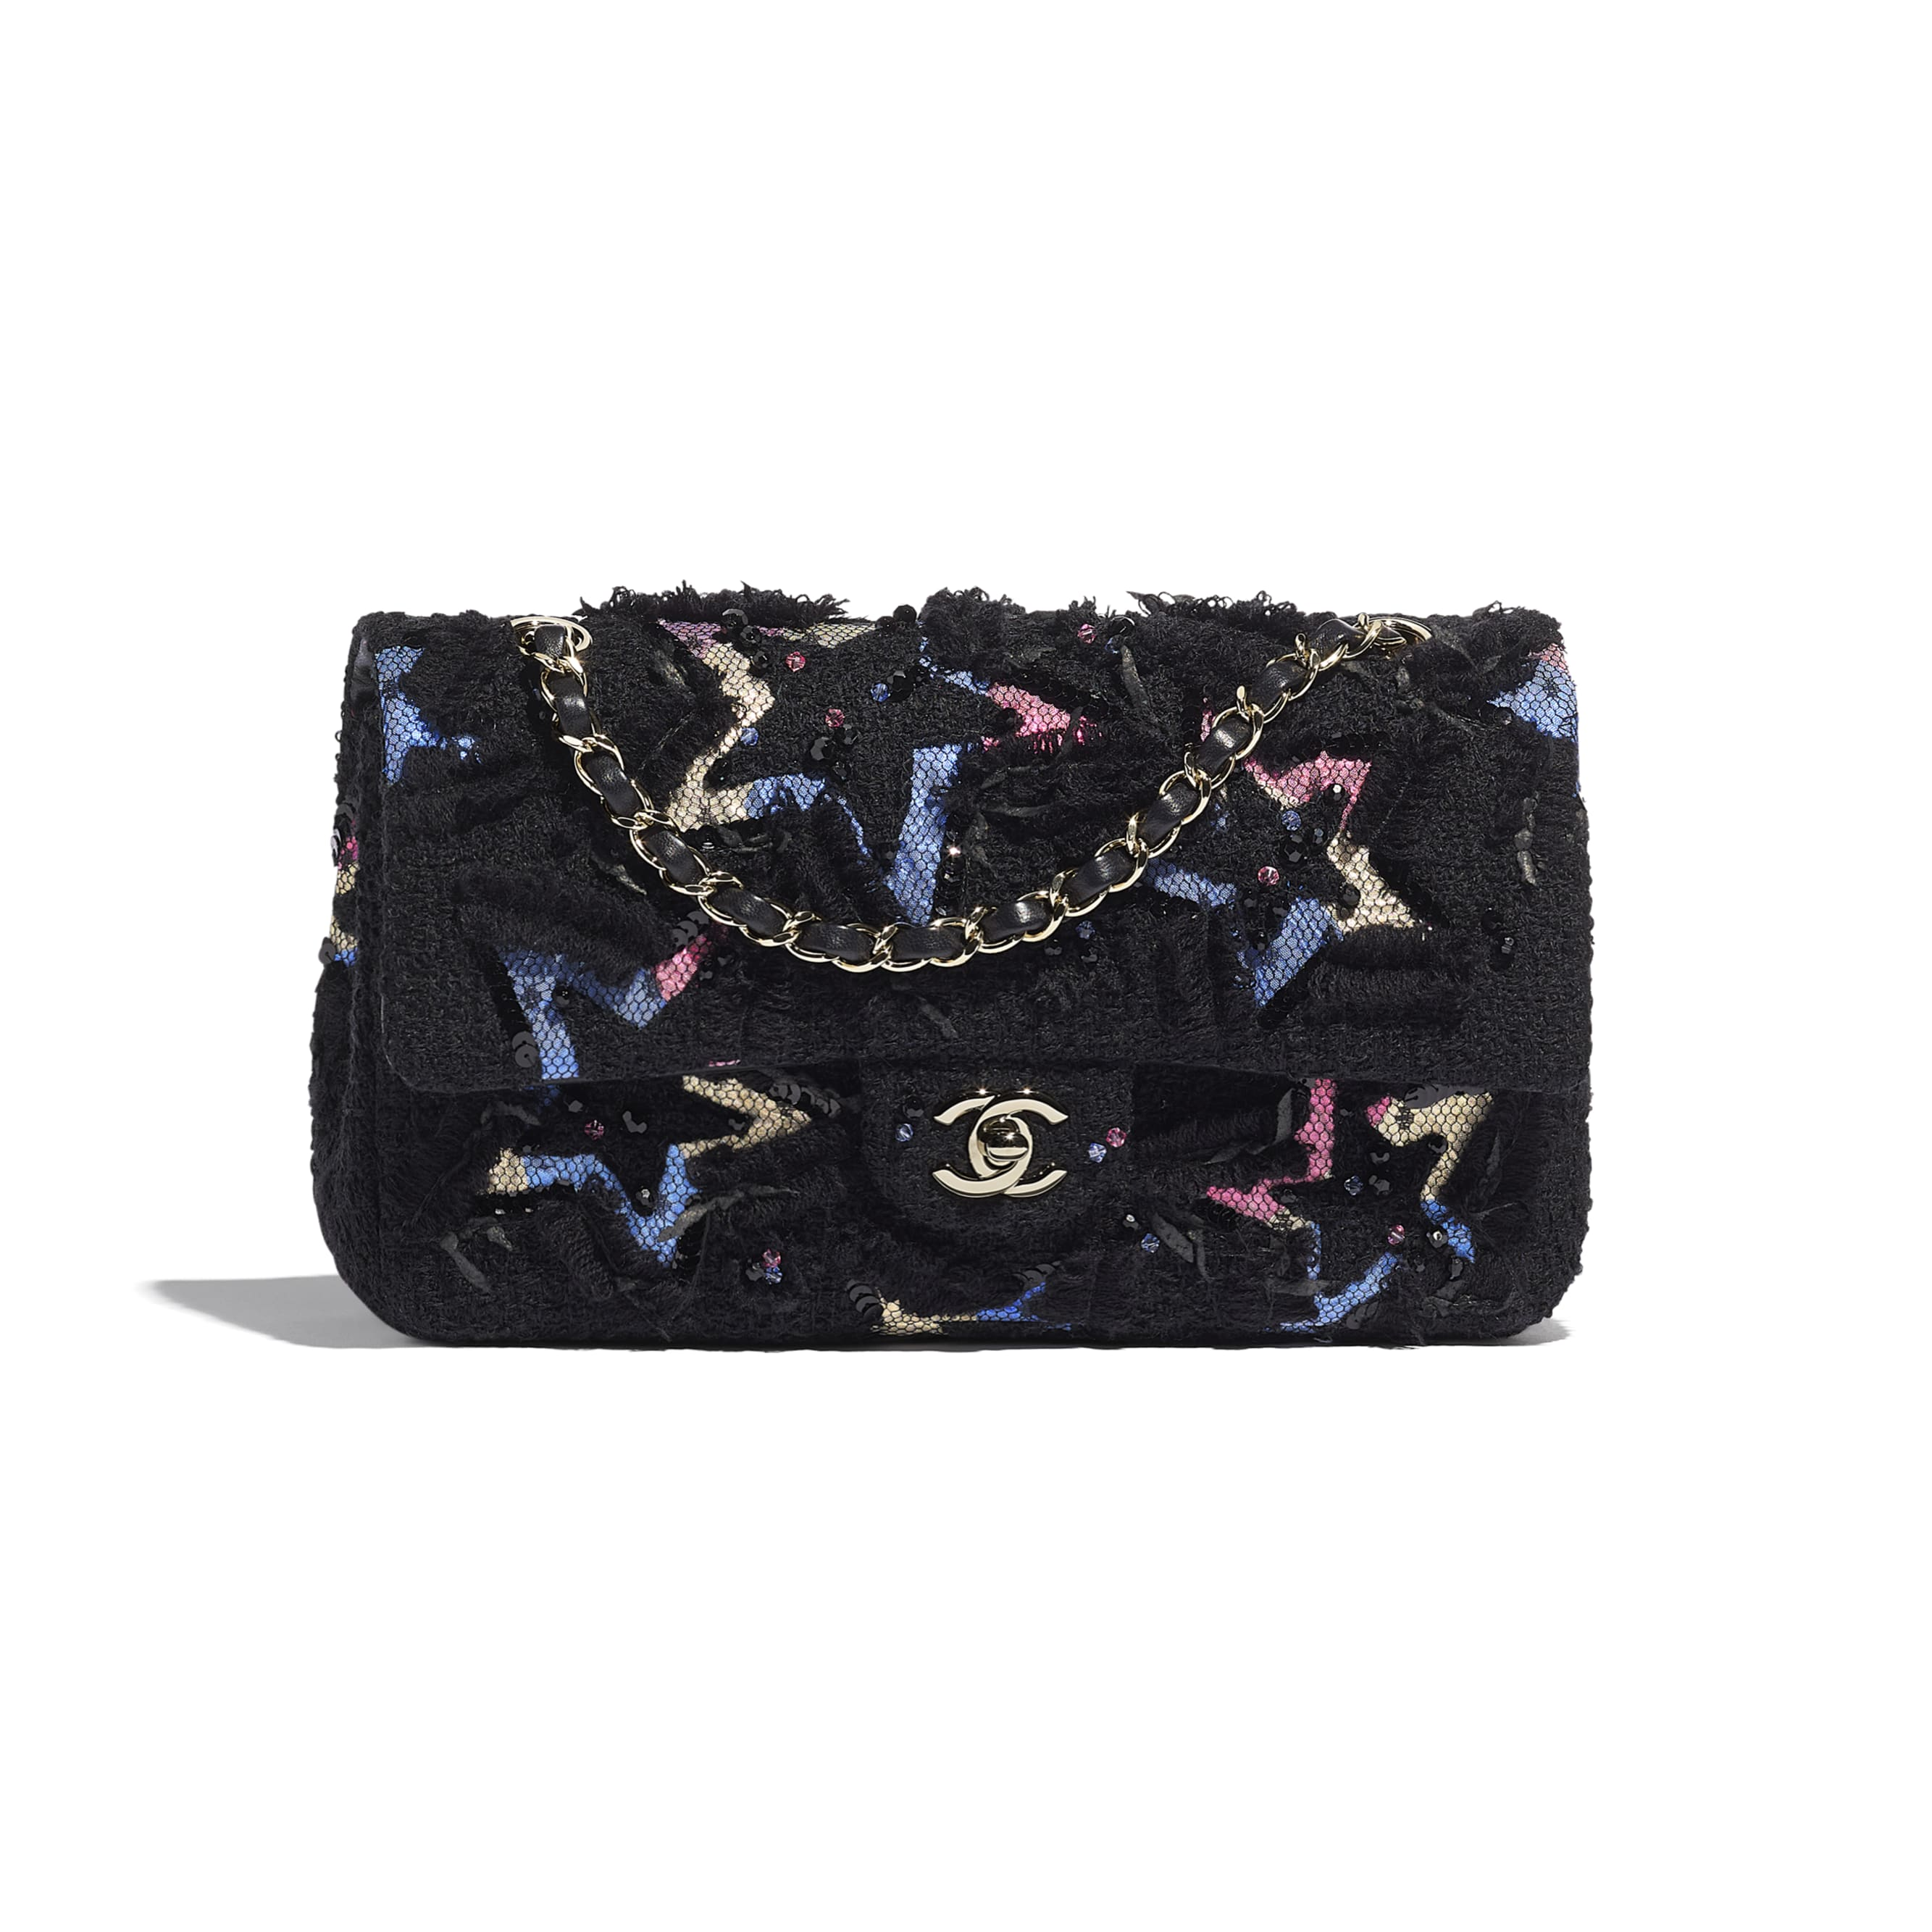 Classic Handbag - Black - Tweed, Cotton, Mixed Fibers, Sequins, Glass Pearls & Gold-Tone Metal - CHANEL - Default view - see standard sized version